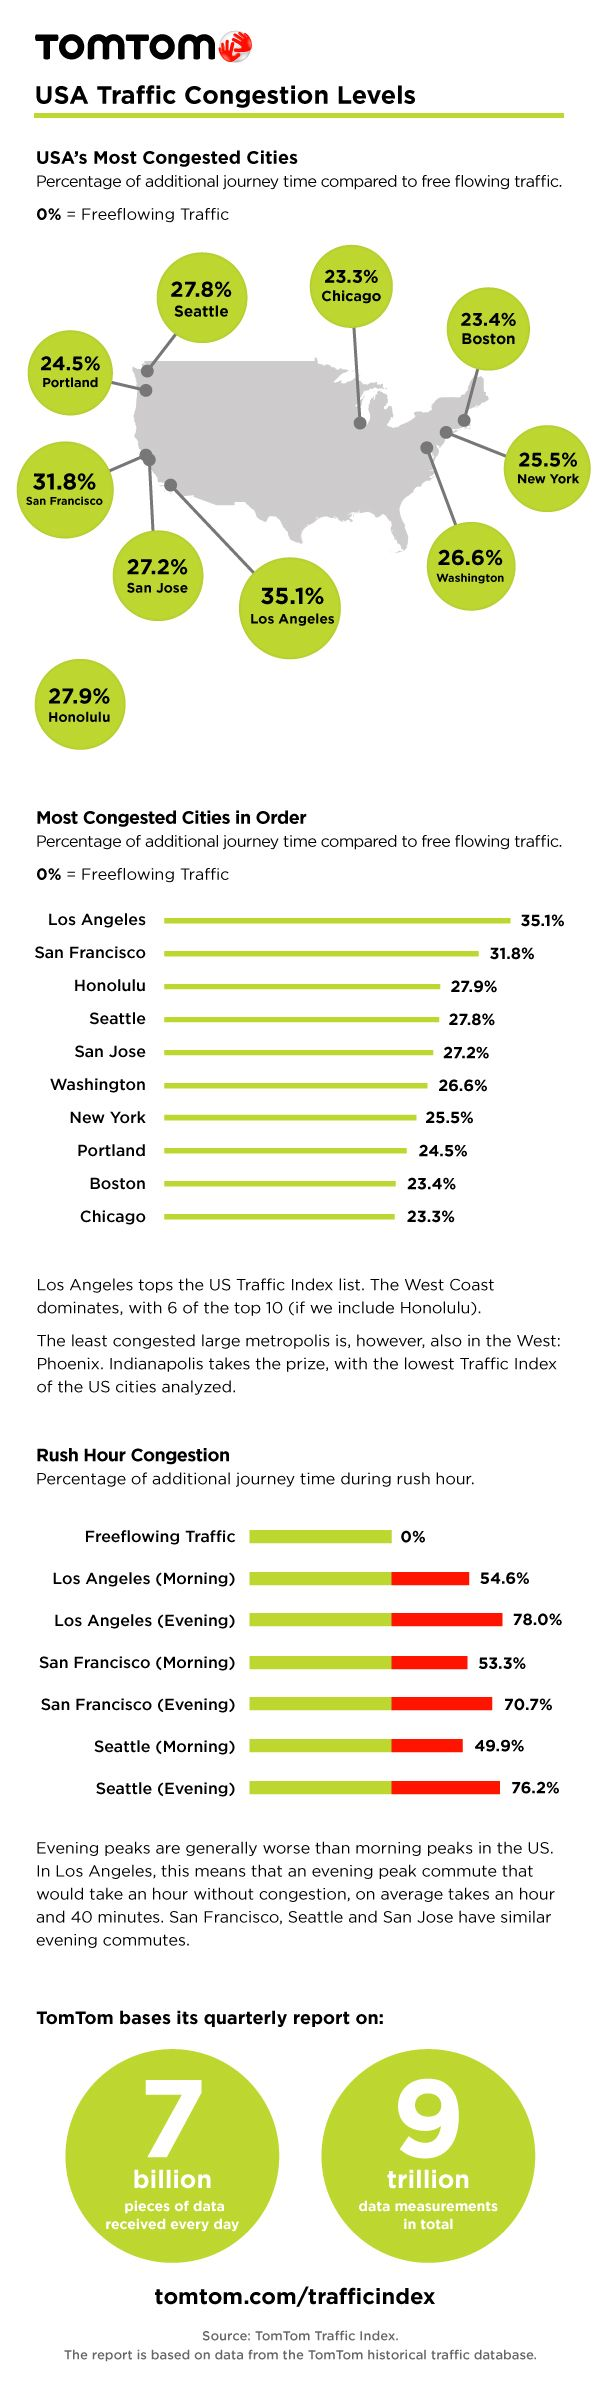 Infographic: USA Traffic Congestion Levels #Infographic #Traffic